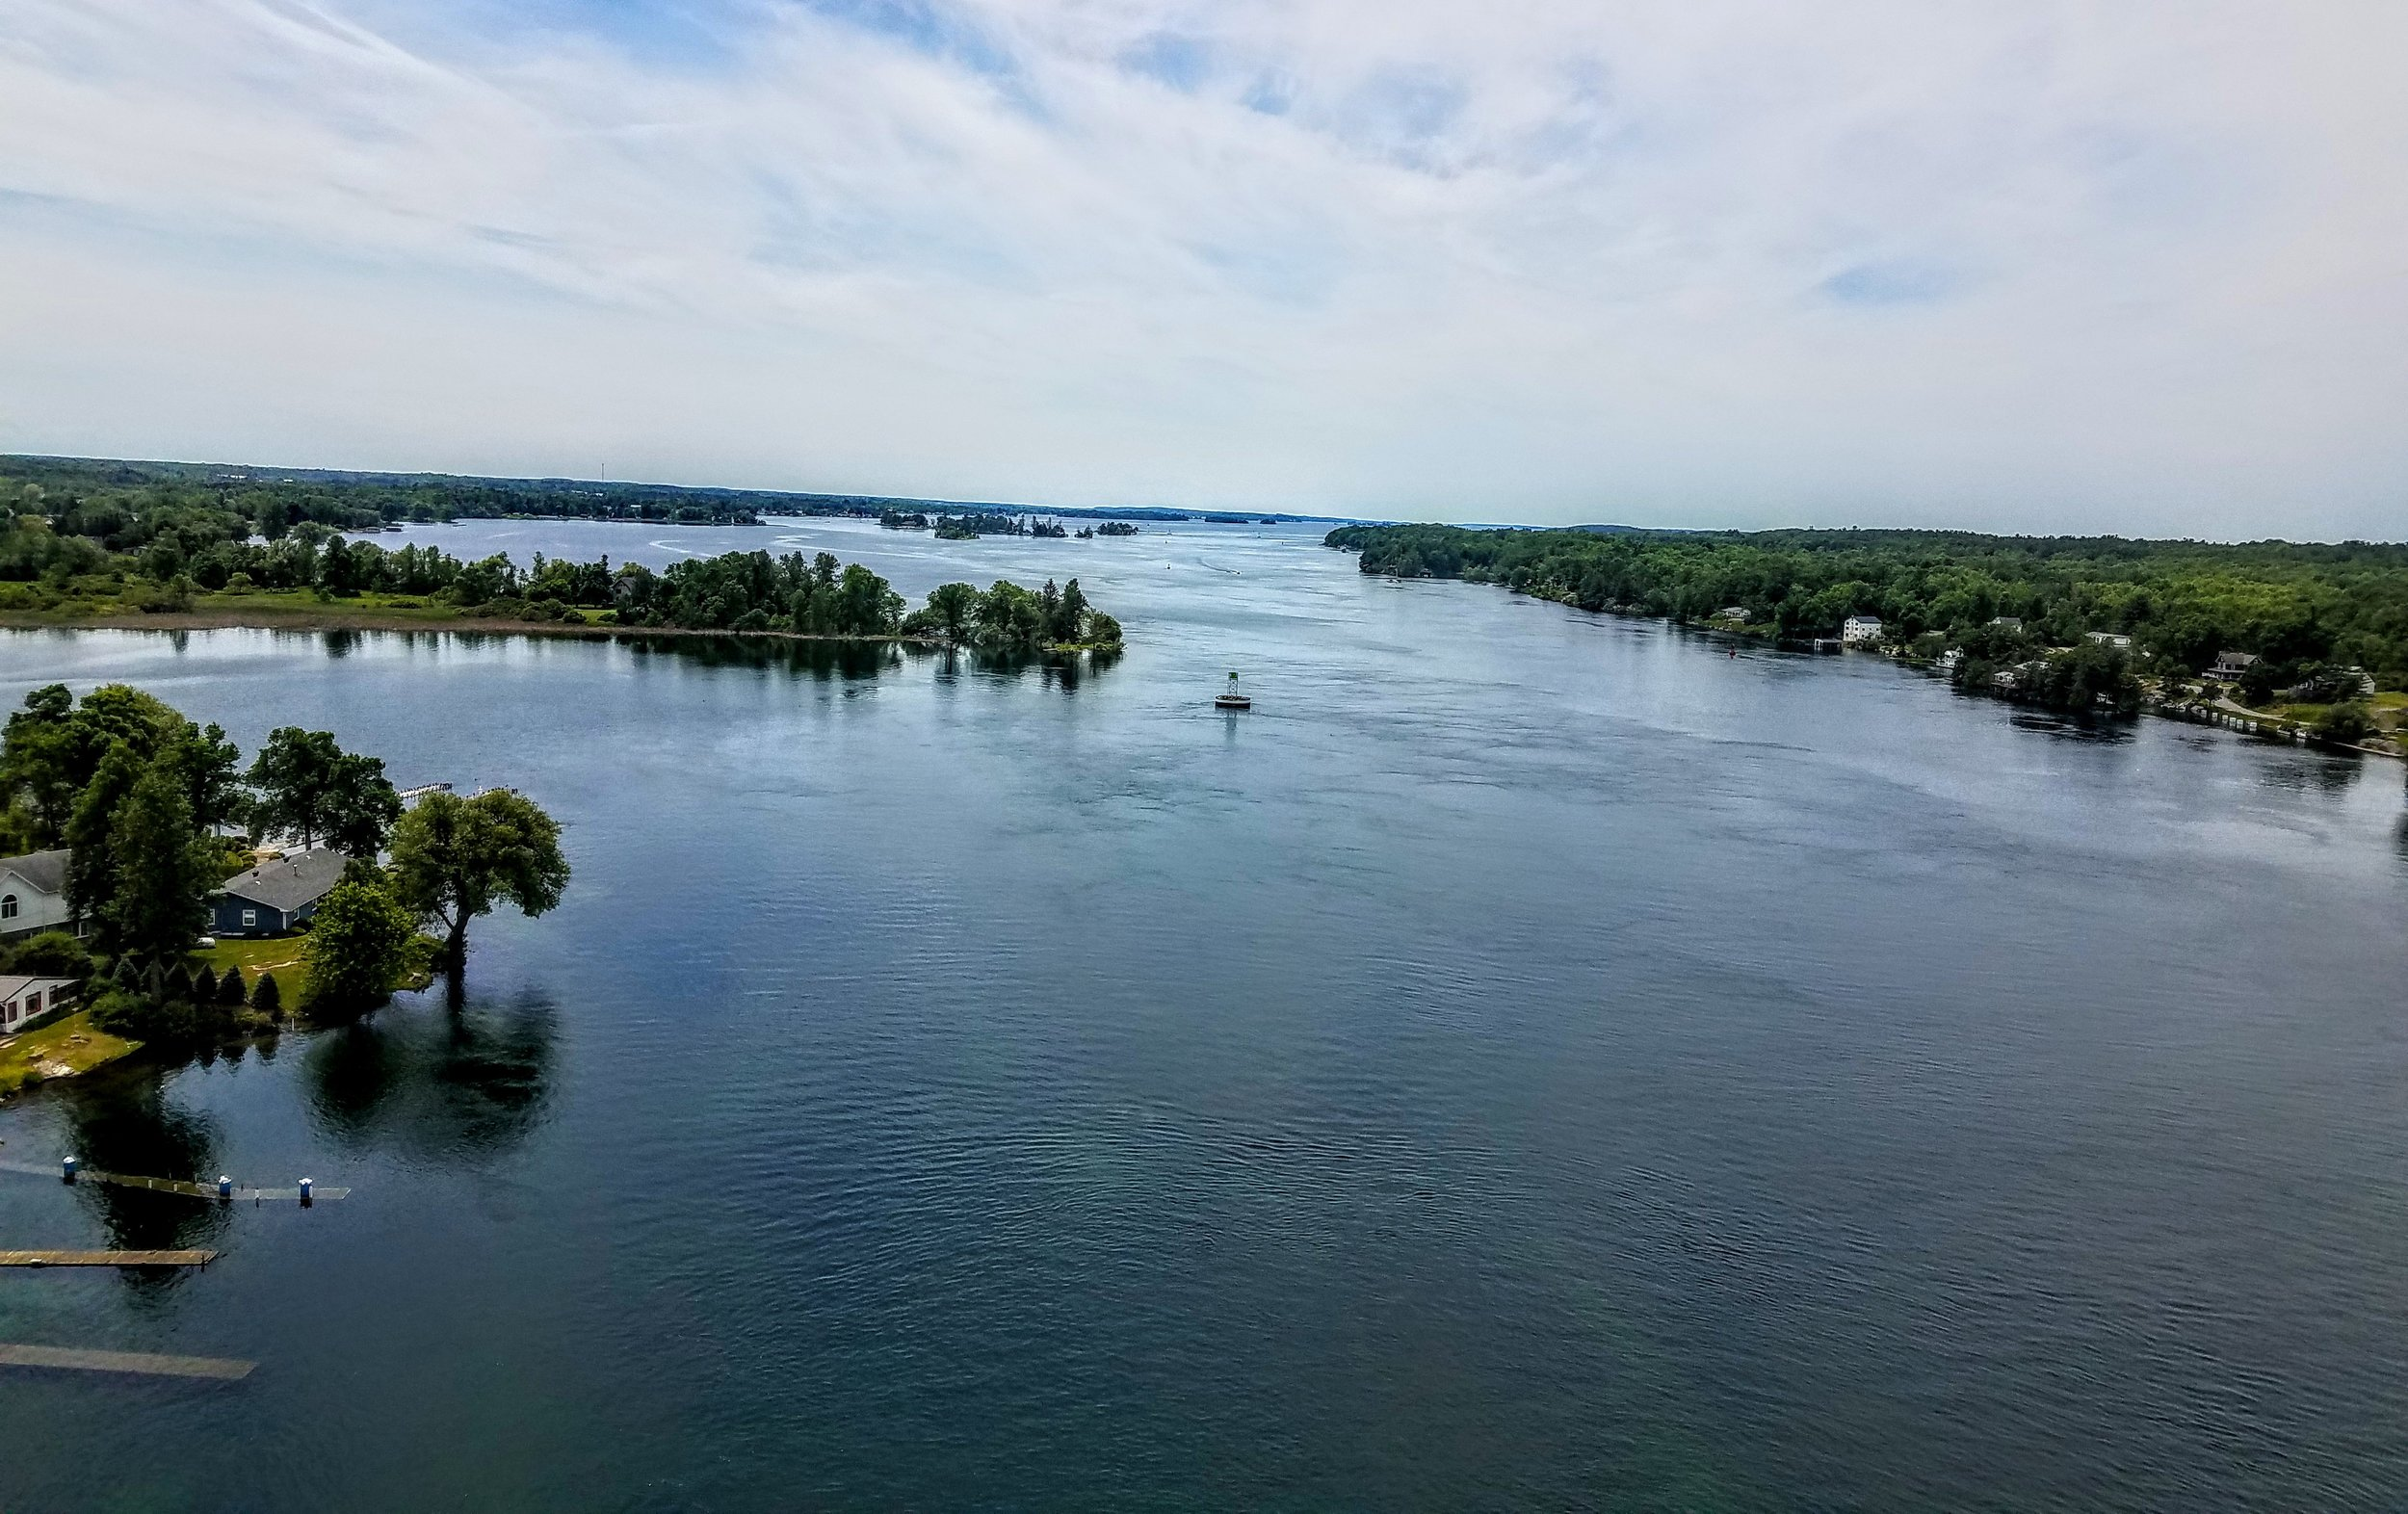 A view of the swollen St. Lawrence River from atop the Thousand Islands Bridge